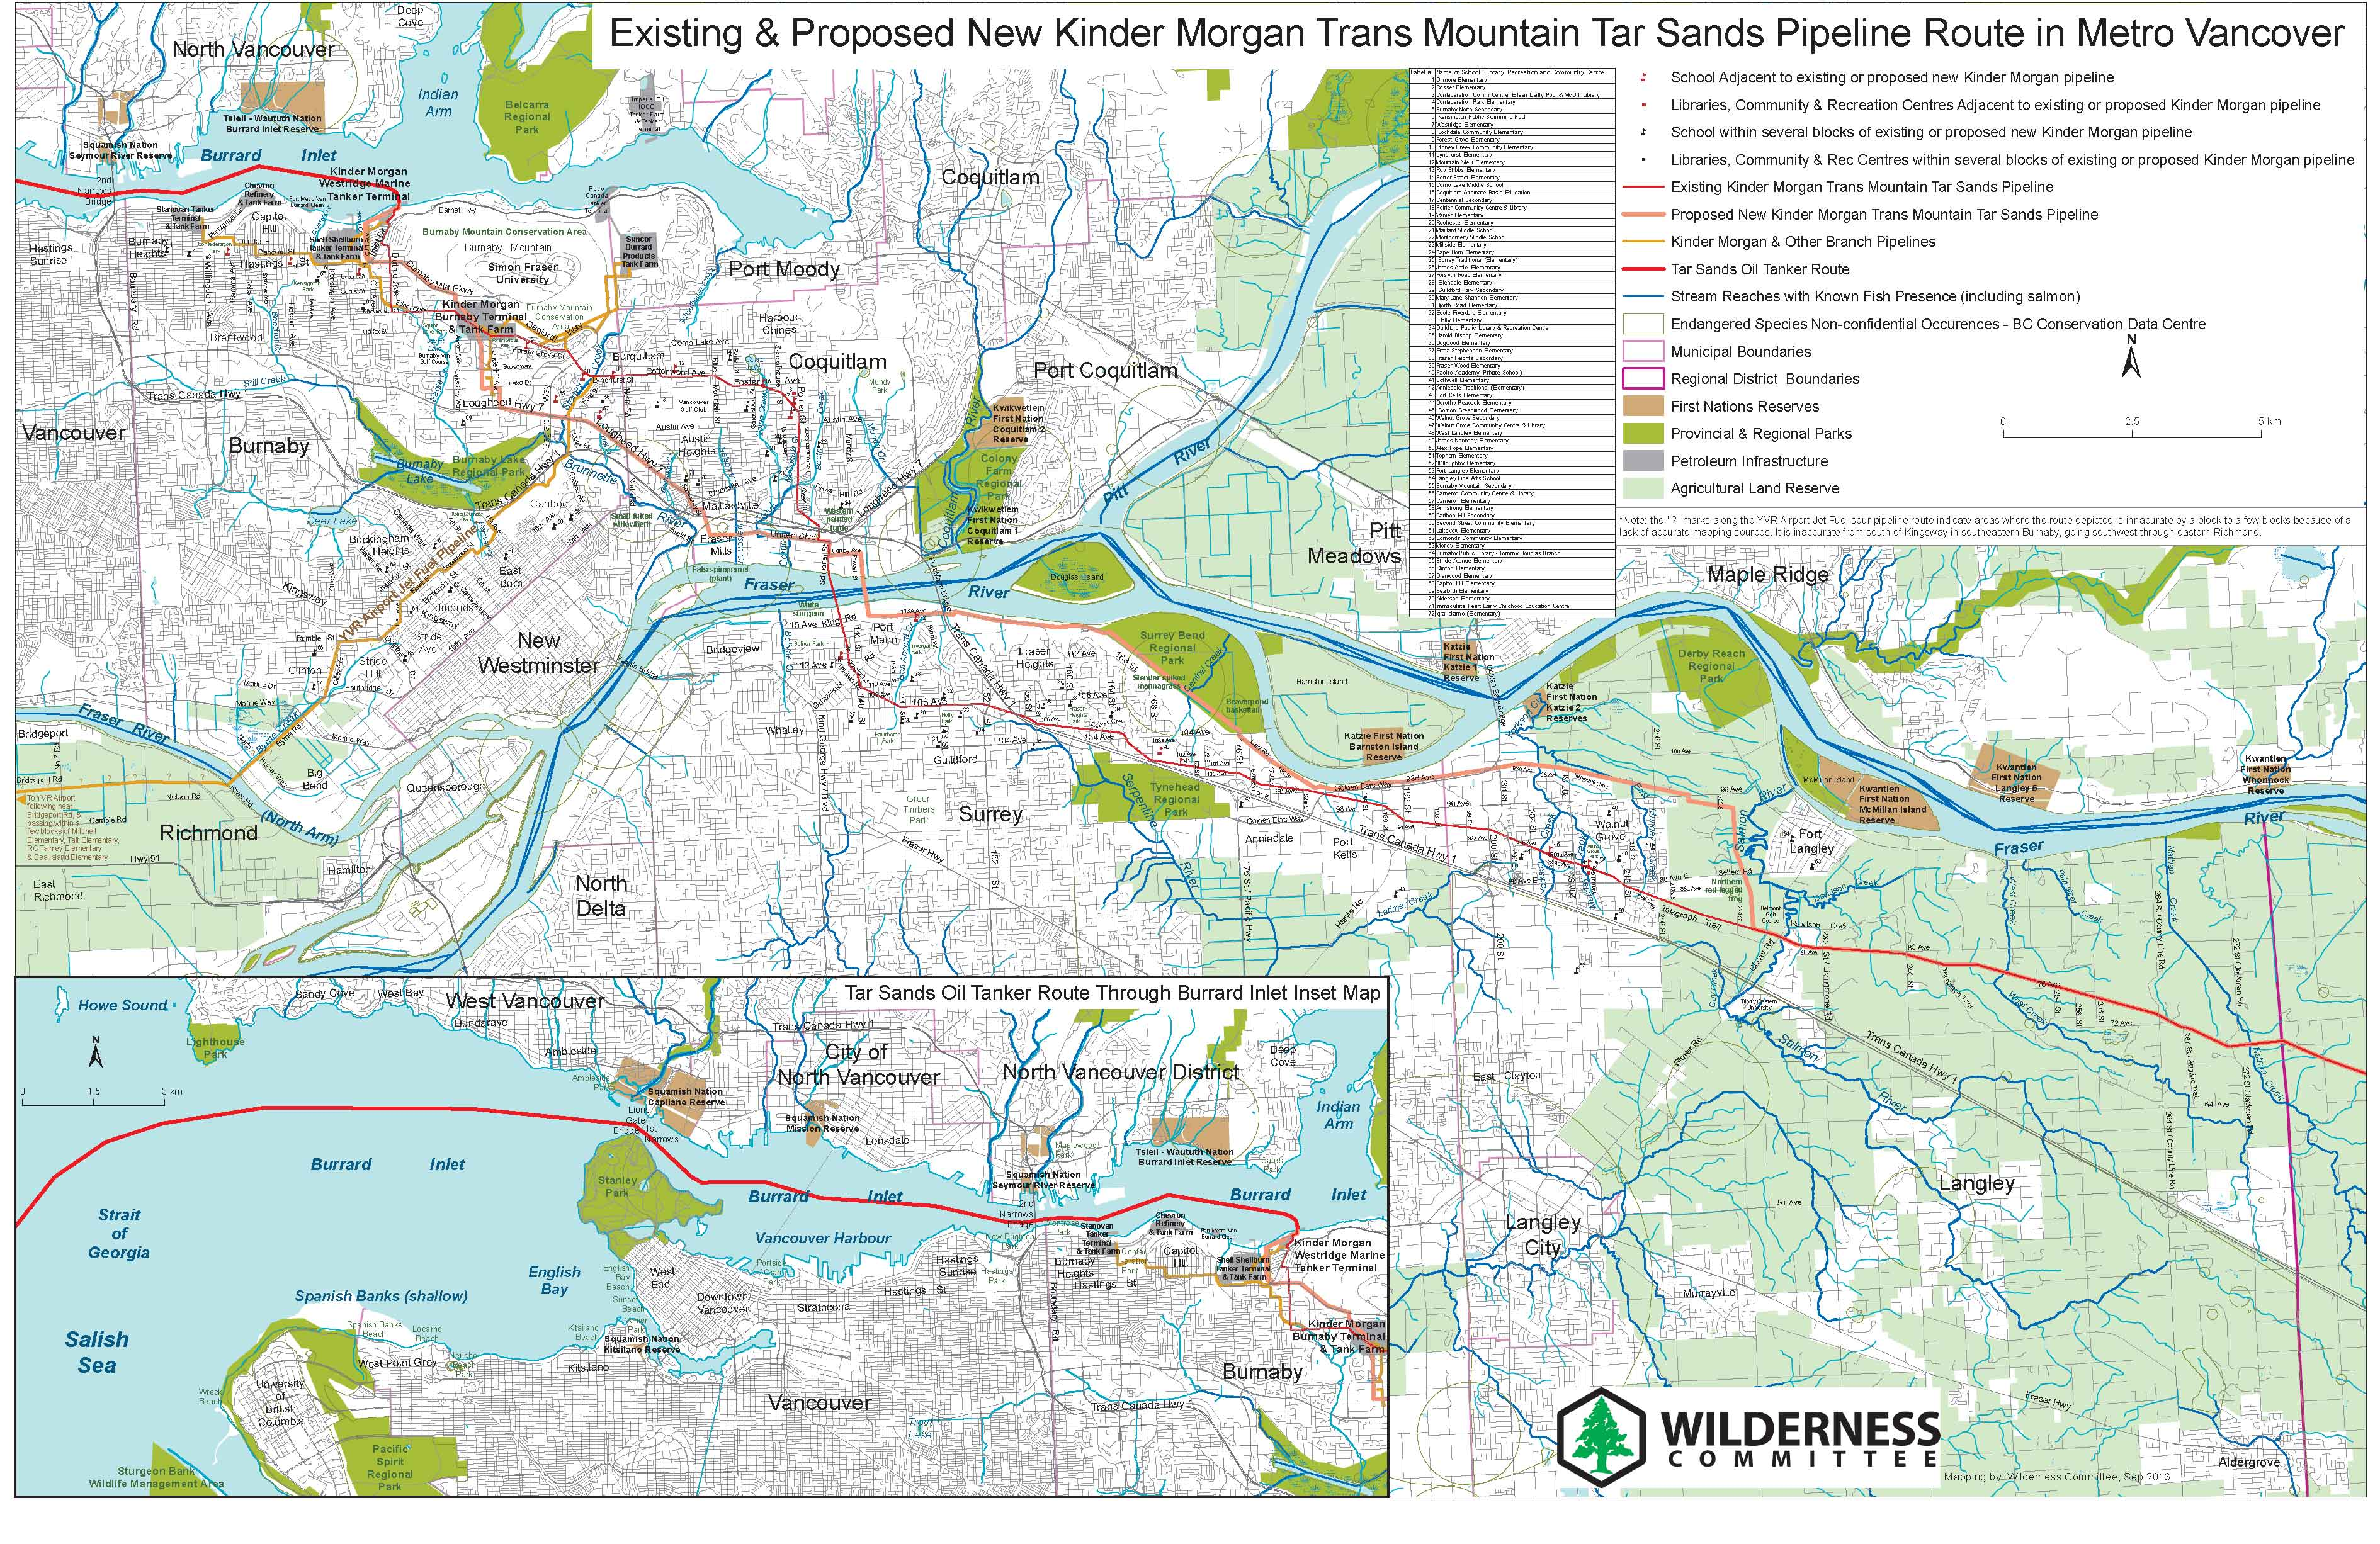 New Downloadable Maps of the Kinder Morgan Pipeline Route ... on keystone pipeline map, cochin pipeline map, seaway pipeline map, proposed pipeline map, express pipeline map, yellowstone pipeline map, puget sound pipeline map,